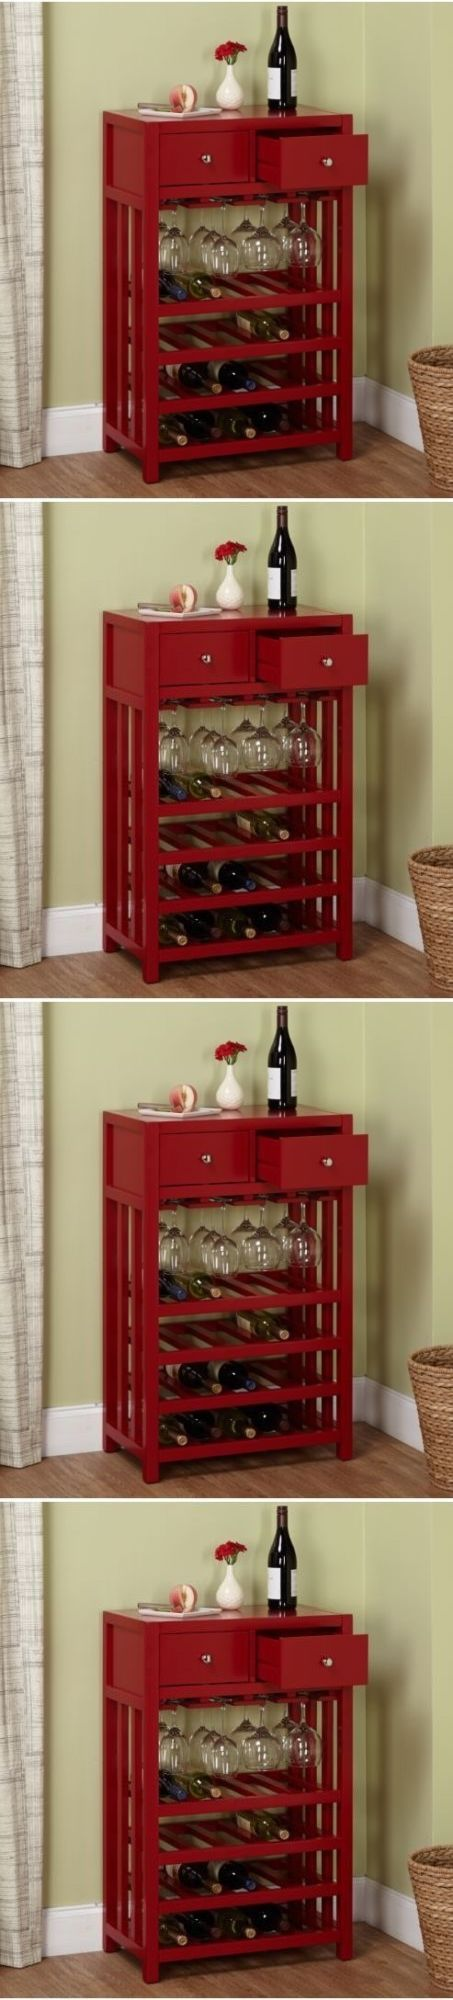 Wine Glass Holders 159901: Wine Glass Rack Under Cabinet Storage 20 Bottle Wine Tower Stemware Holder Wood -> BUY IT NOW ONLY: $161.99 on eBay!